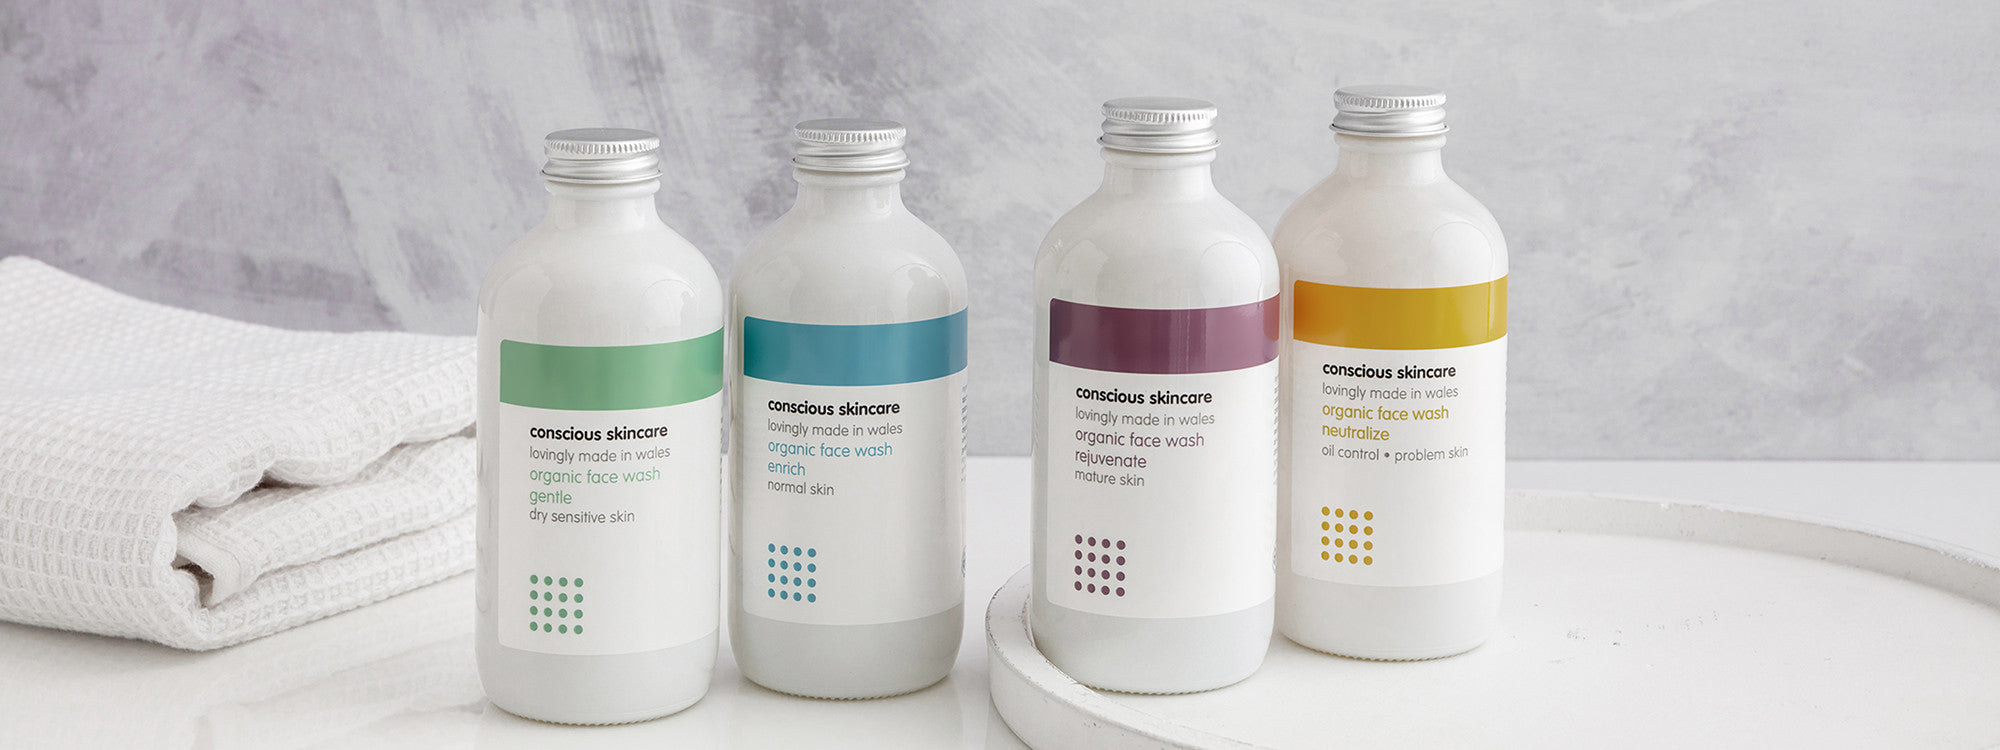 Conscious Skincare Face Range is available to suit different skin types